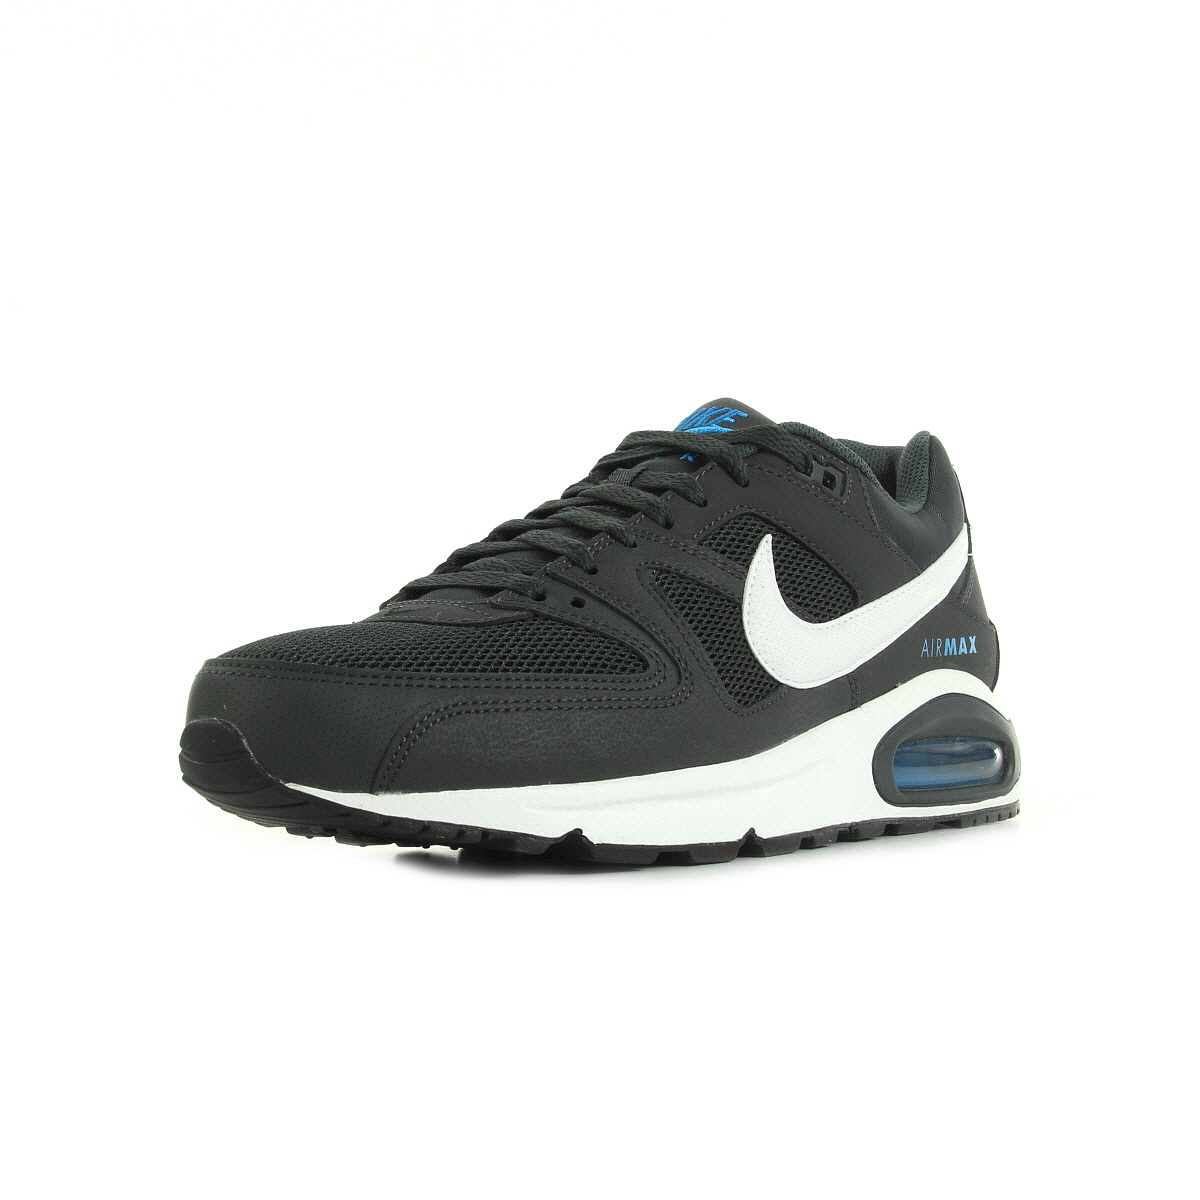 chaussures baskets nike homme air max command taille gris grise cuir lacets ebay. Black Bedroom Furniture Sets. Home Design Ideas